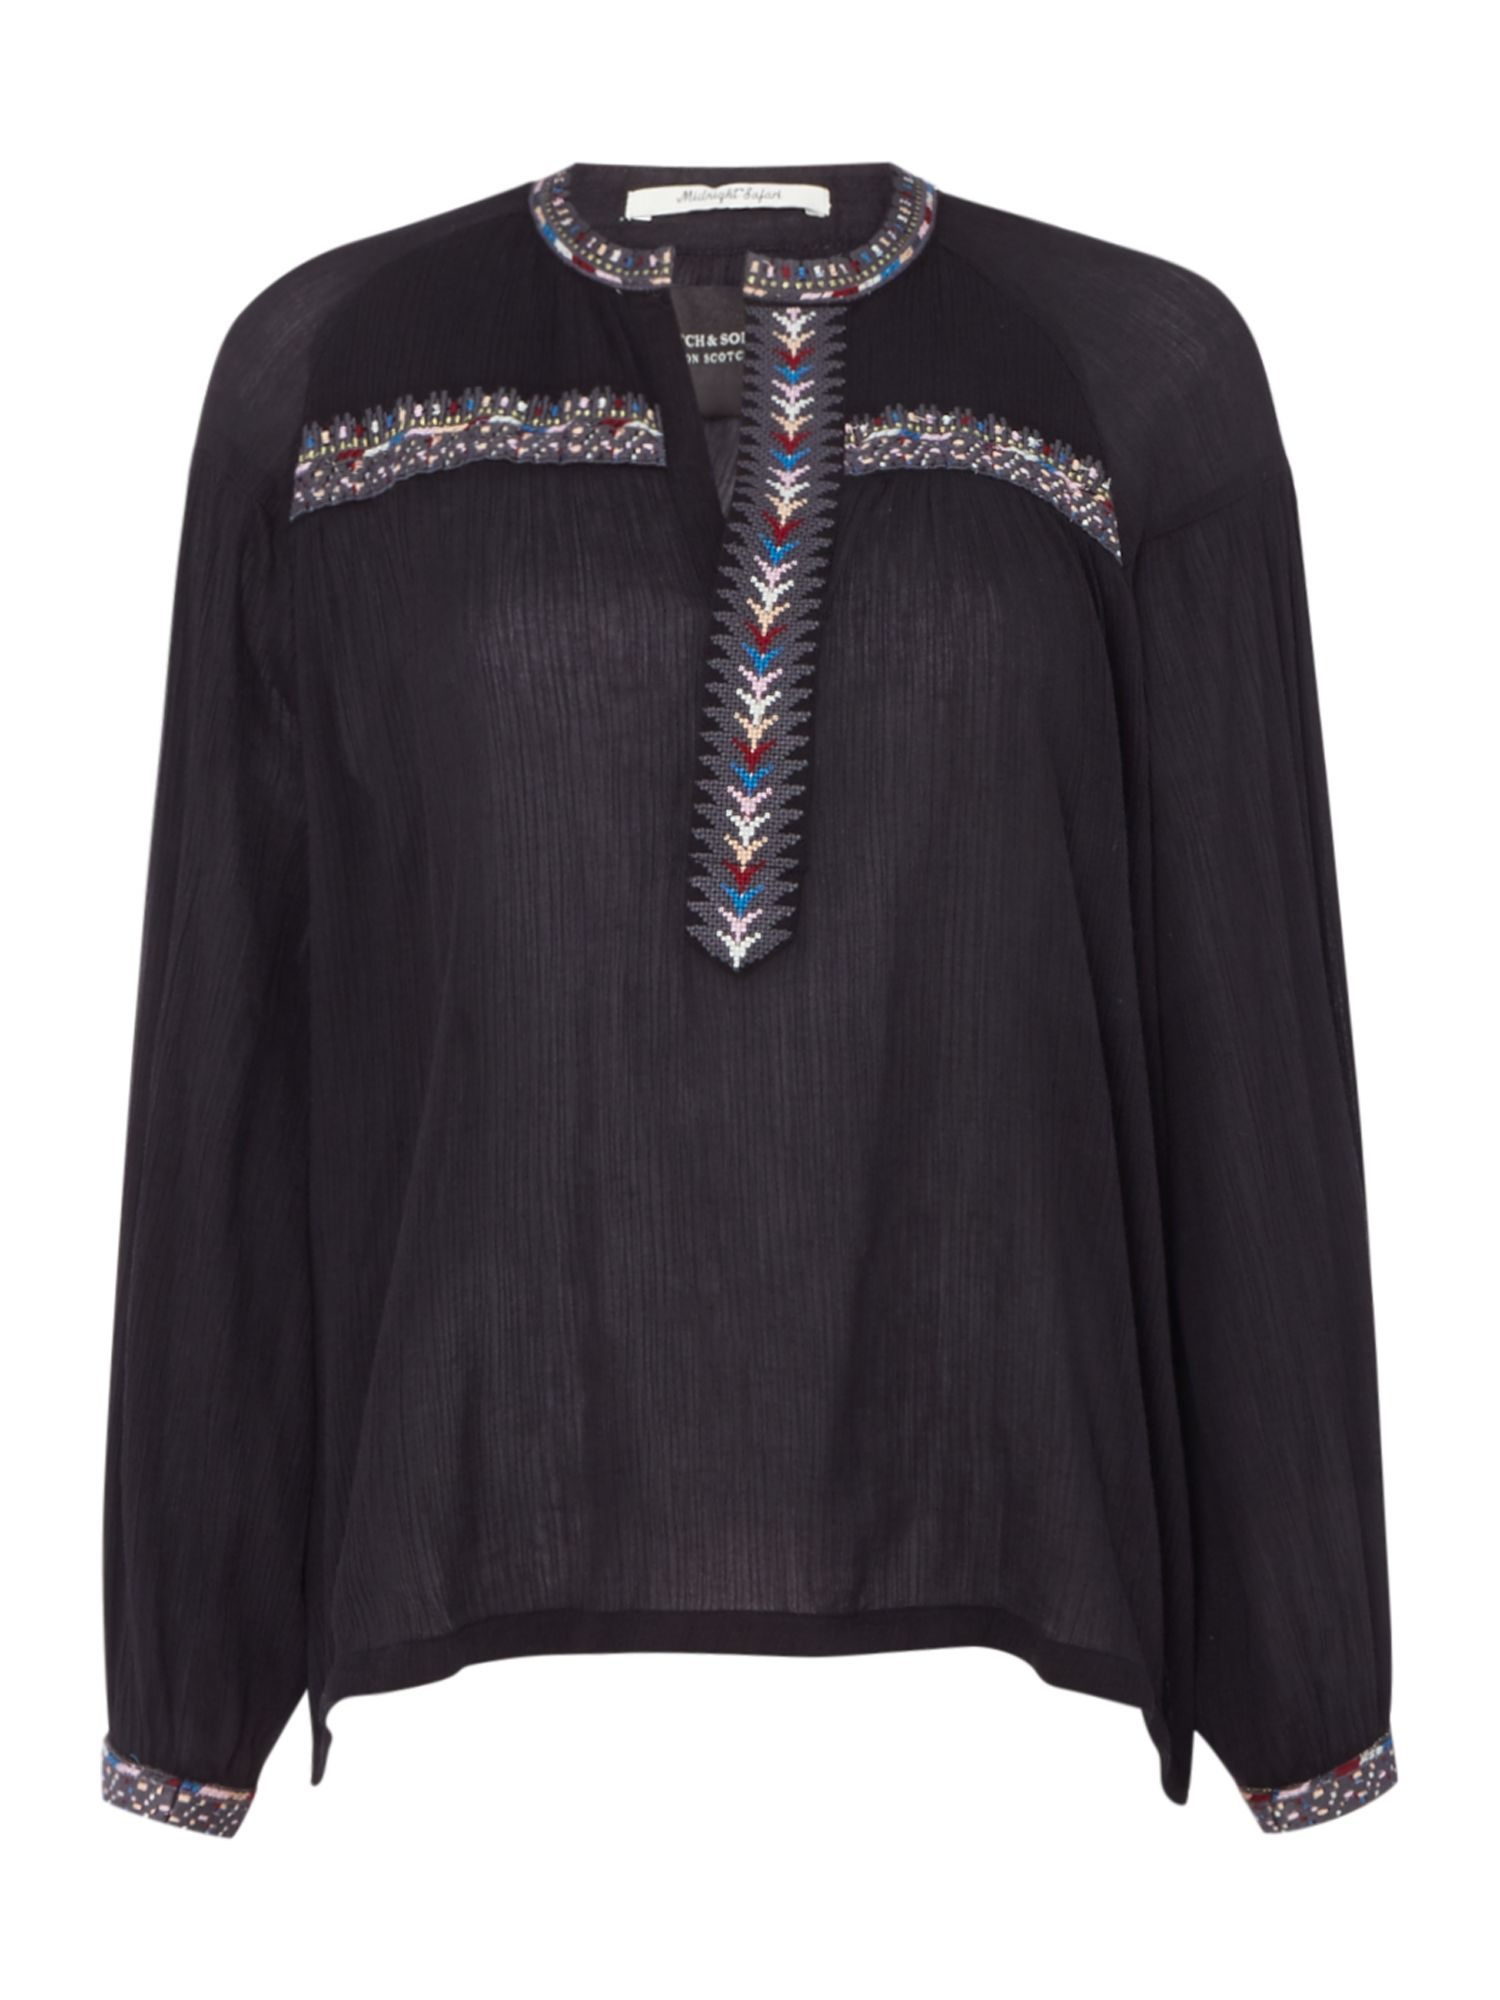 Maison Scotch Boho top with embroidery detail, Black